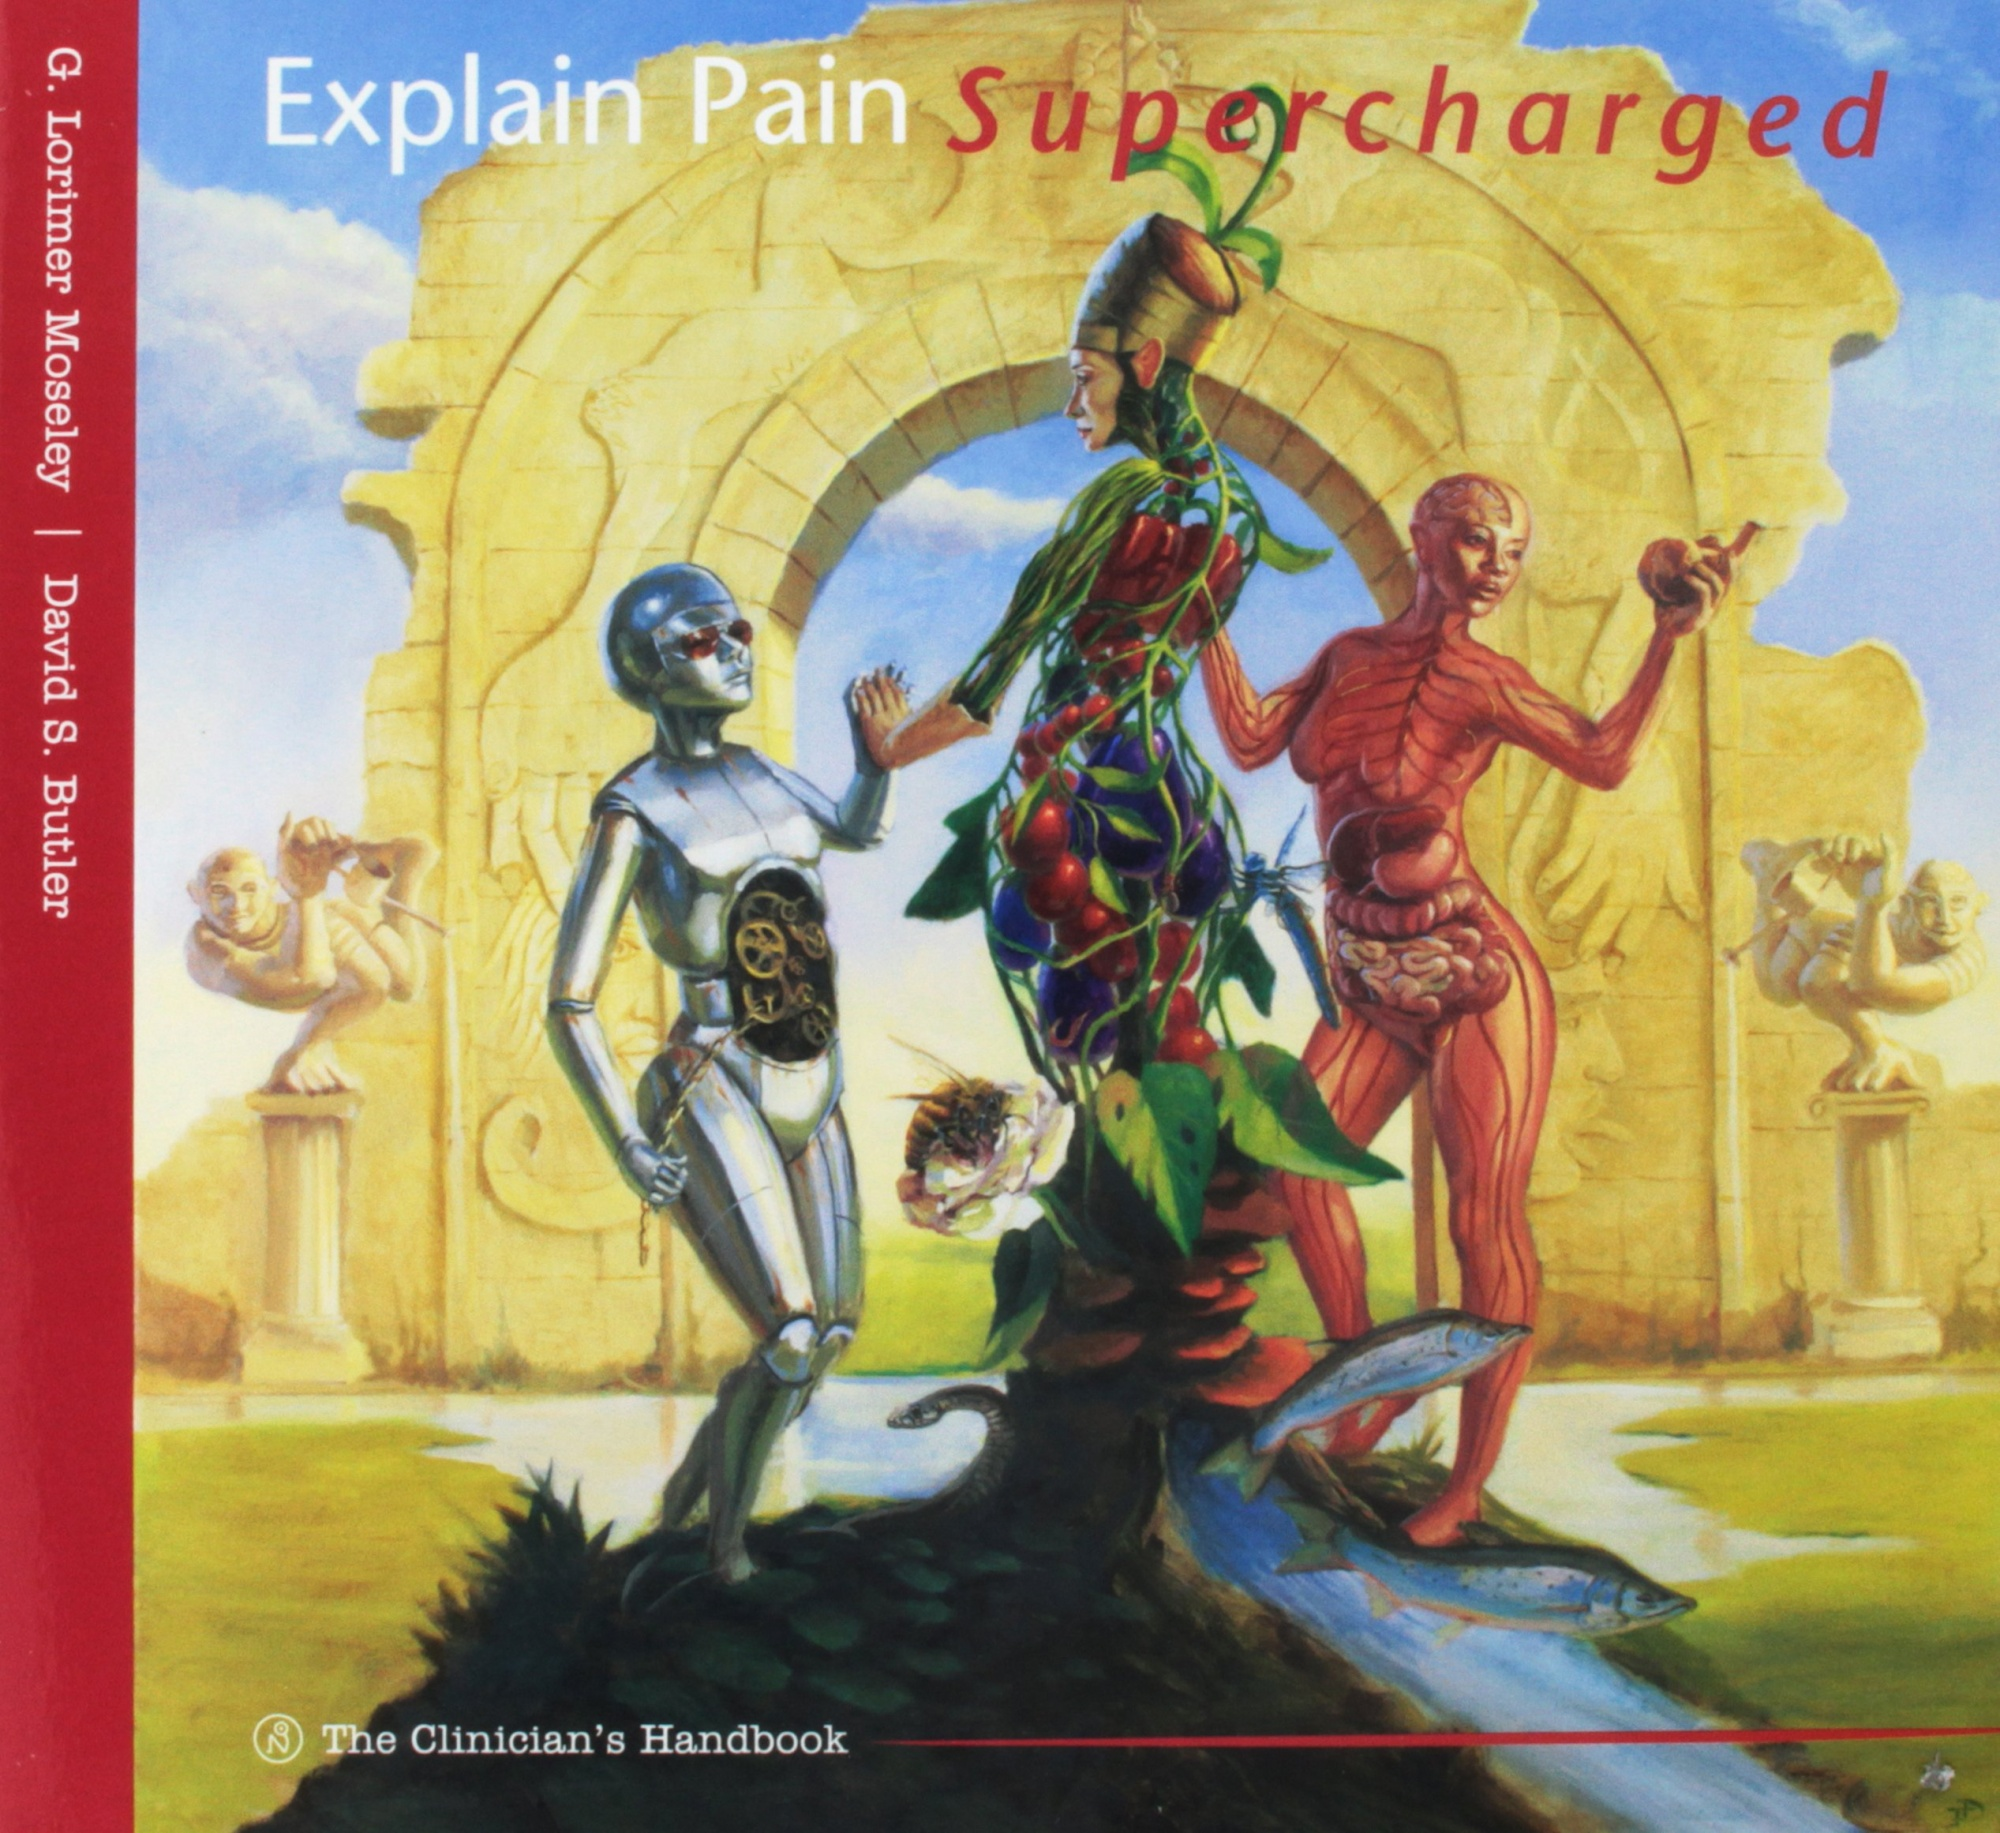 Explain Pain Supercharged by Prof G. Lorimer Moseley and Dr David S. Butler, ISBN: 9780648022701